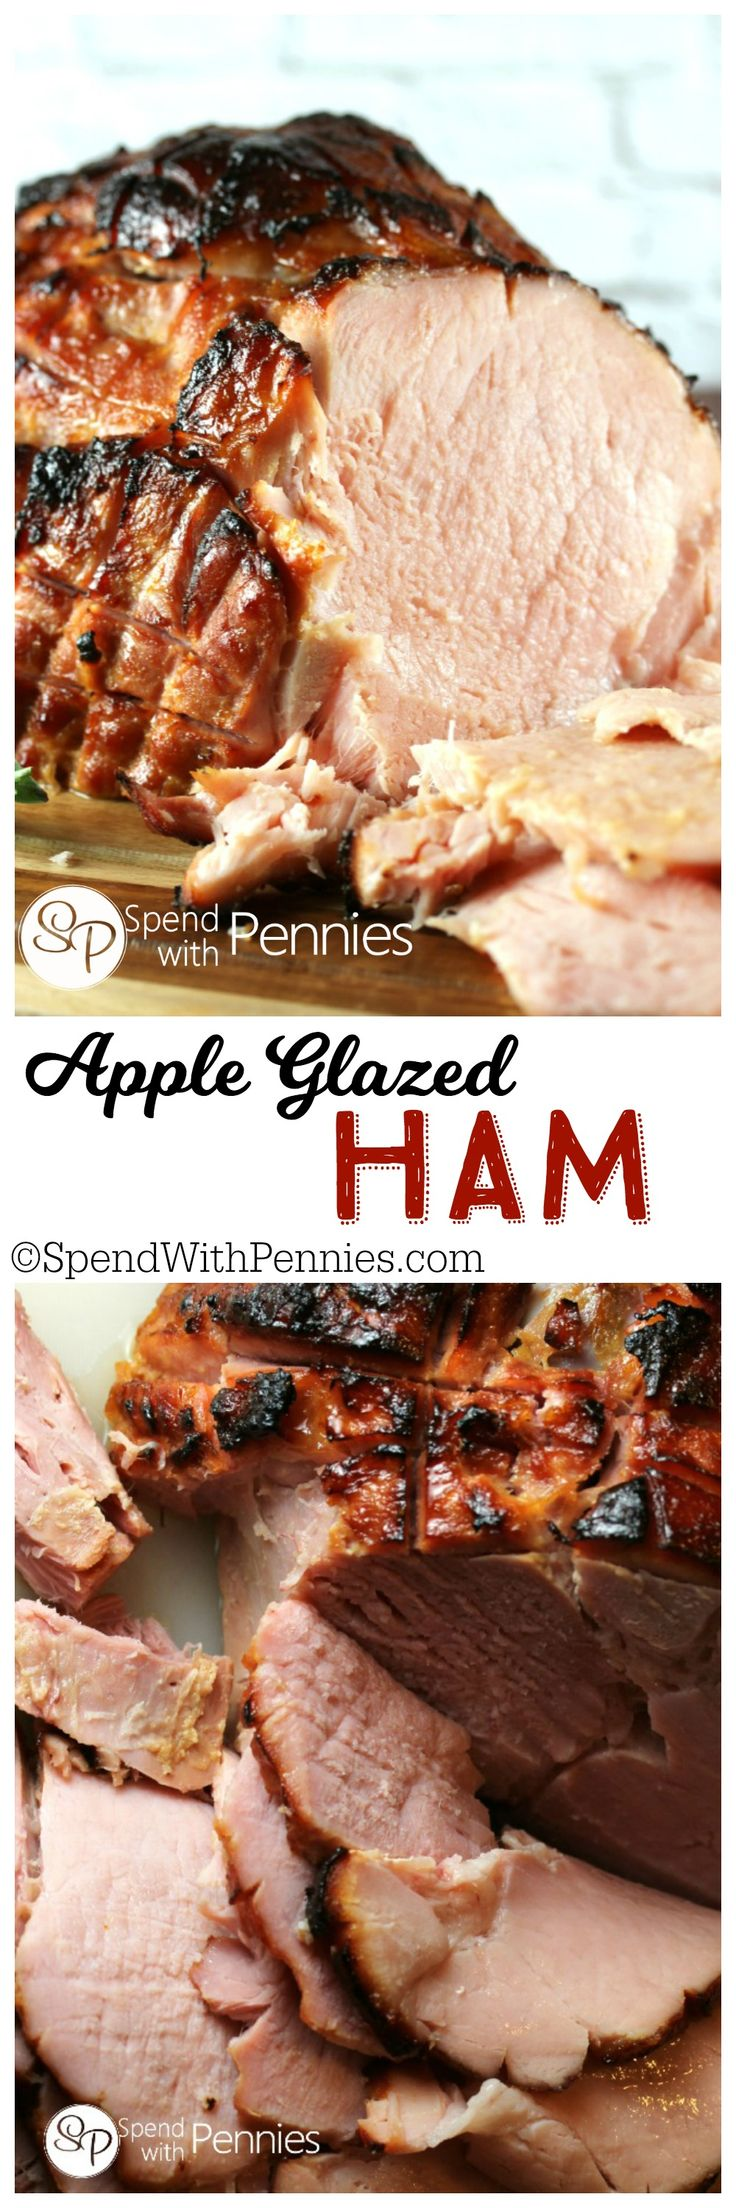 One of our all time favorite ham recipes! Apple Glazed Baked Ham is easy and the…